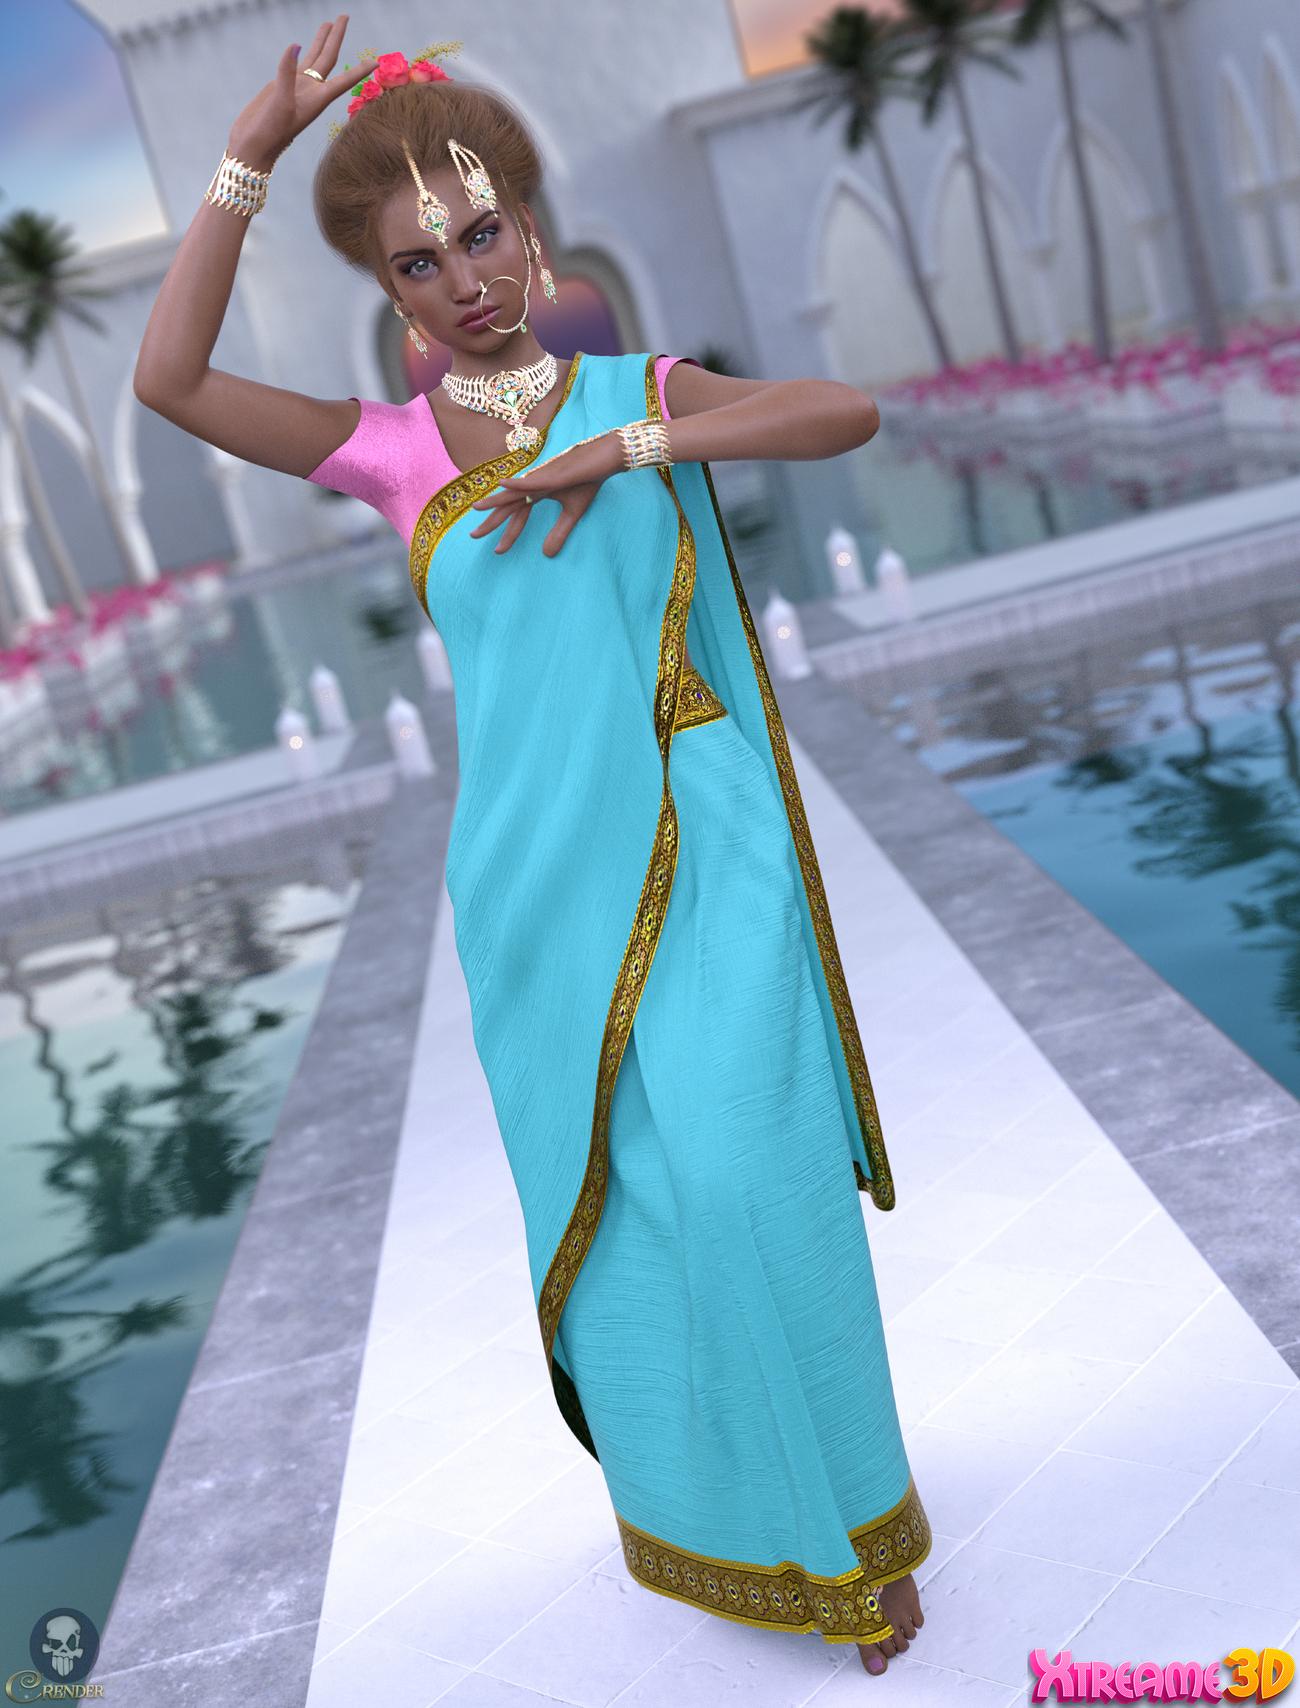 a93 - dForce Saree G8F by anjeli93 2 by crender